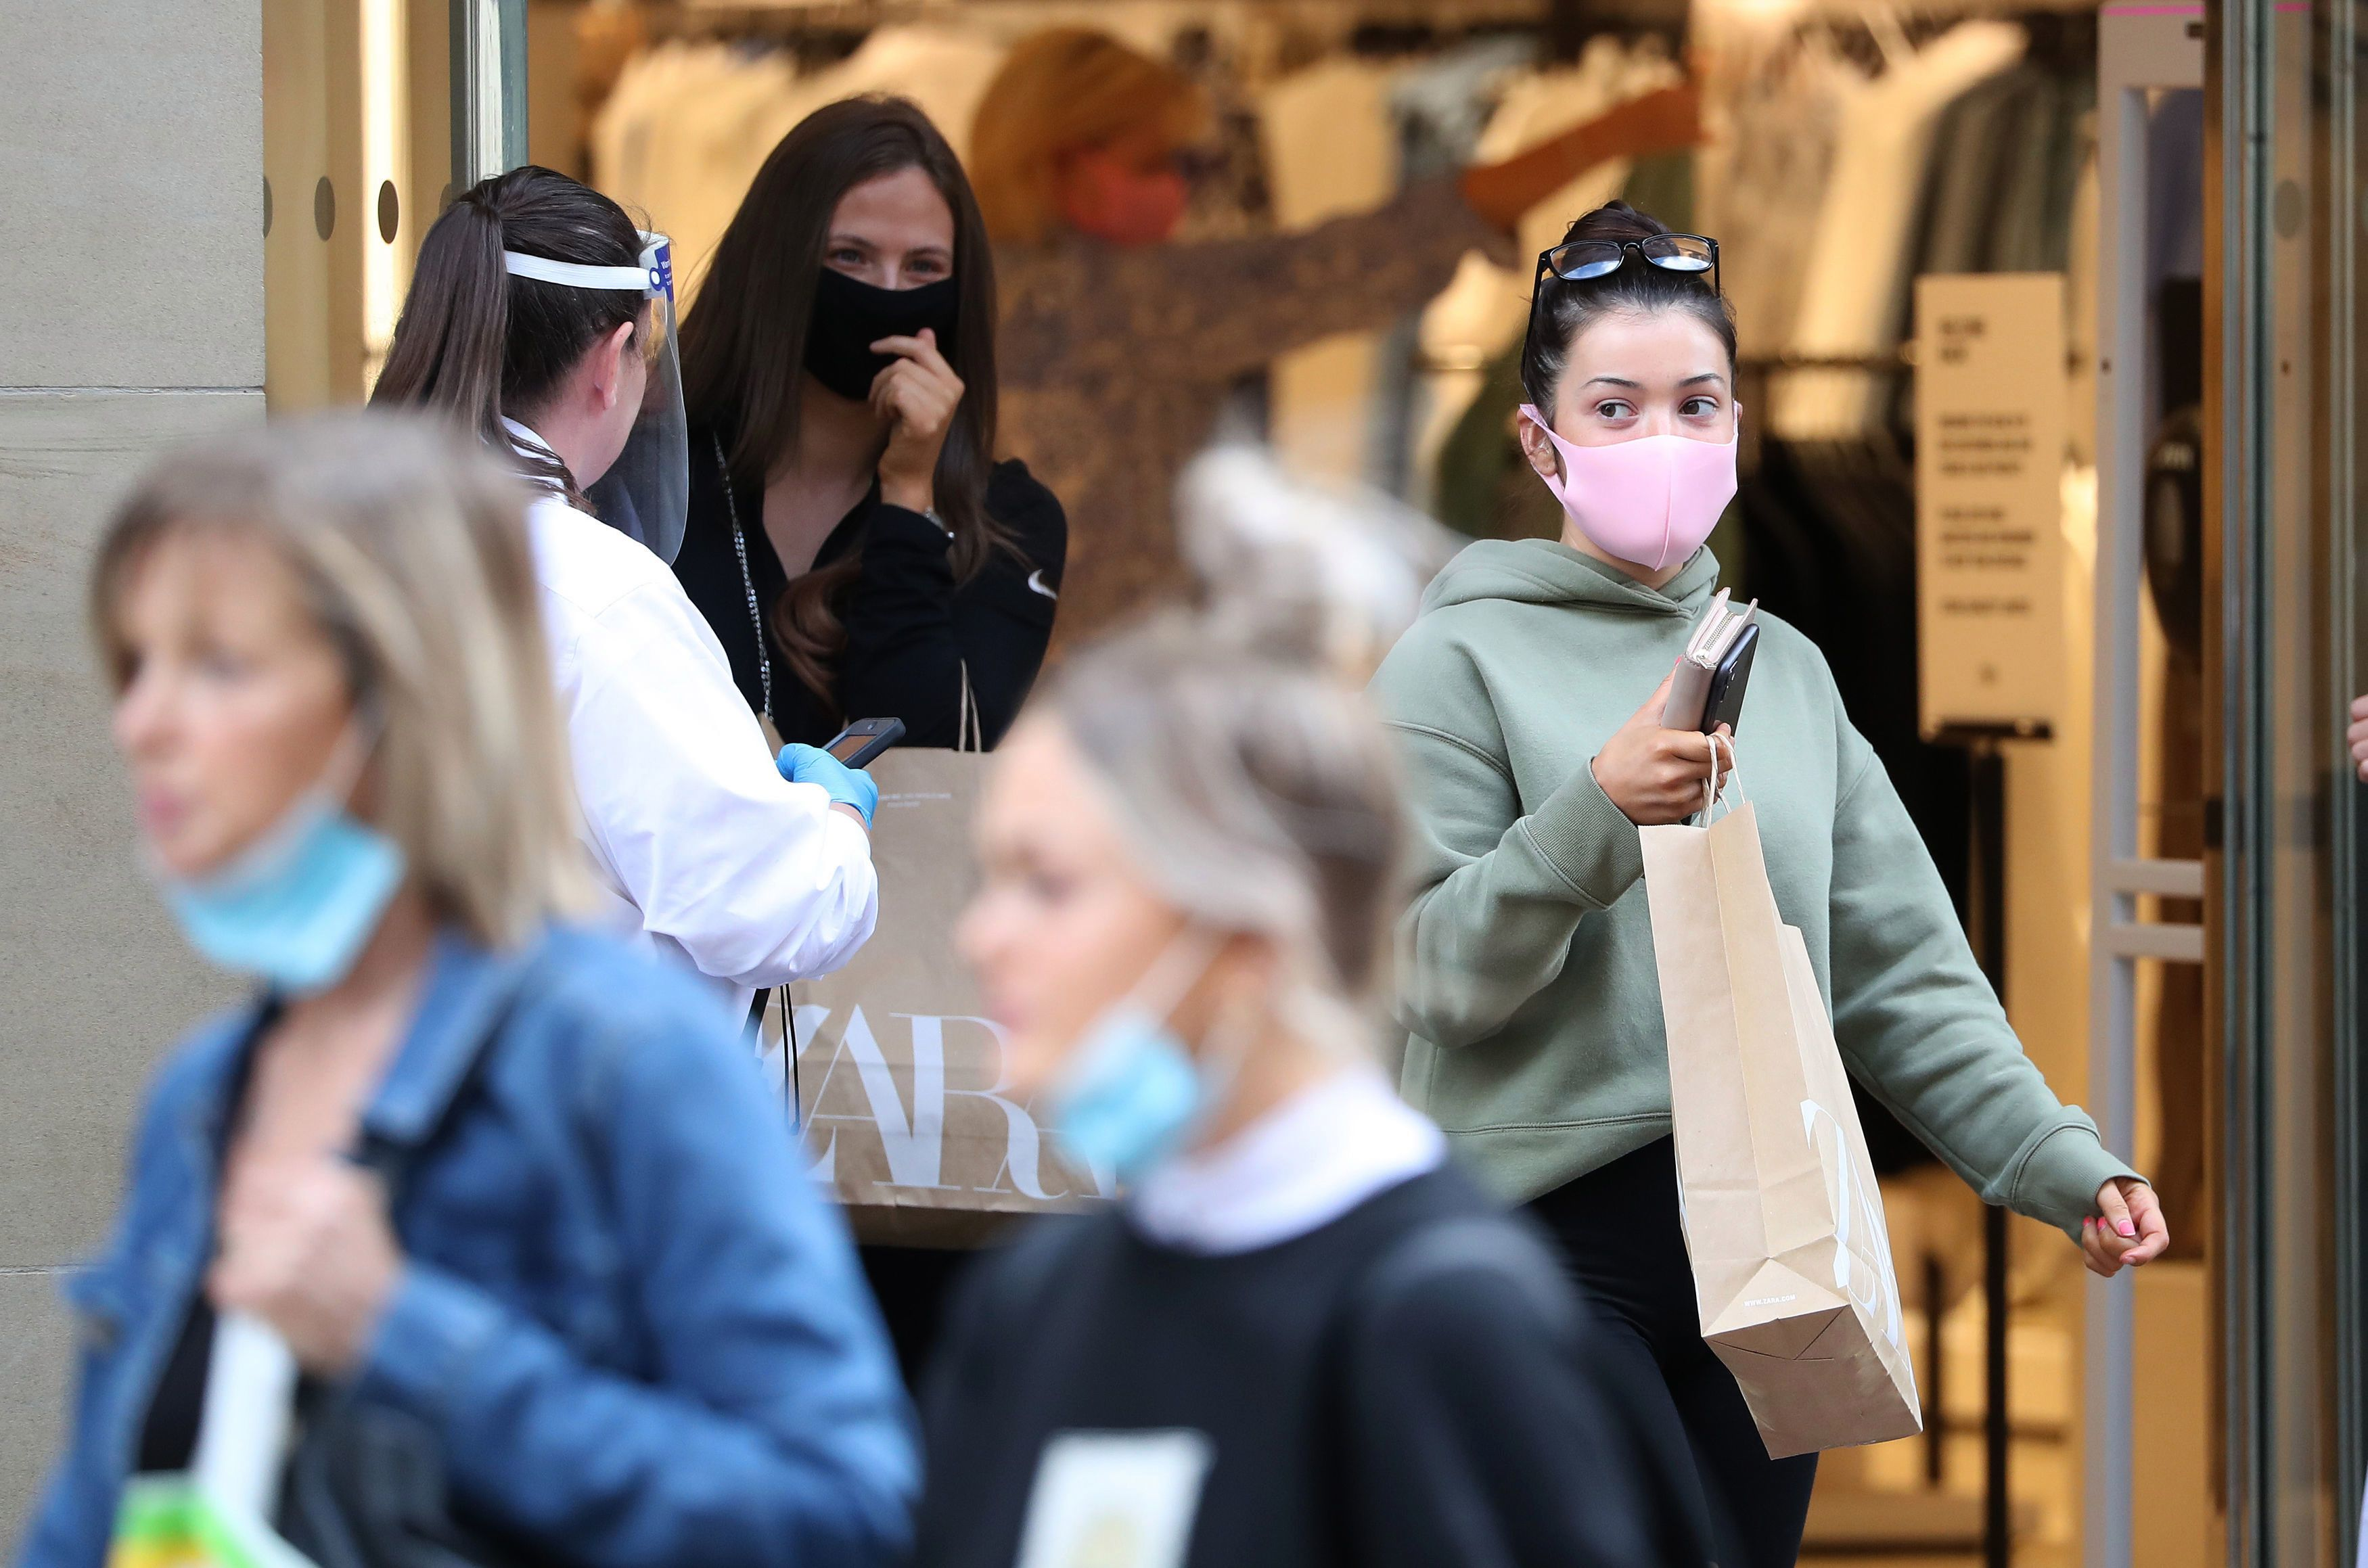 People will have to wear masks in shops from July 24